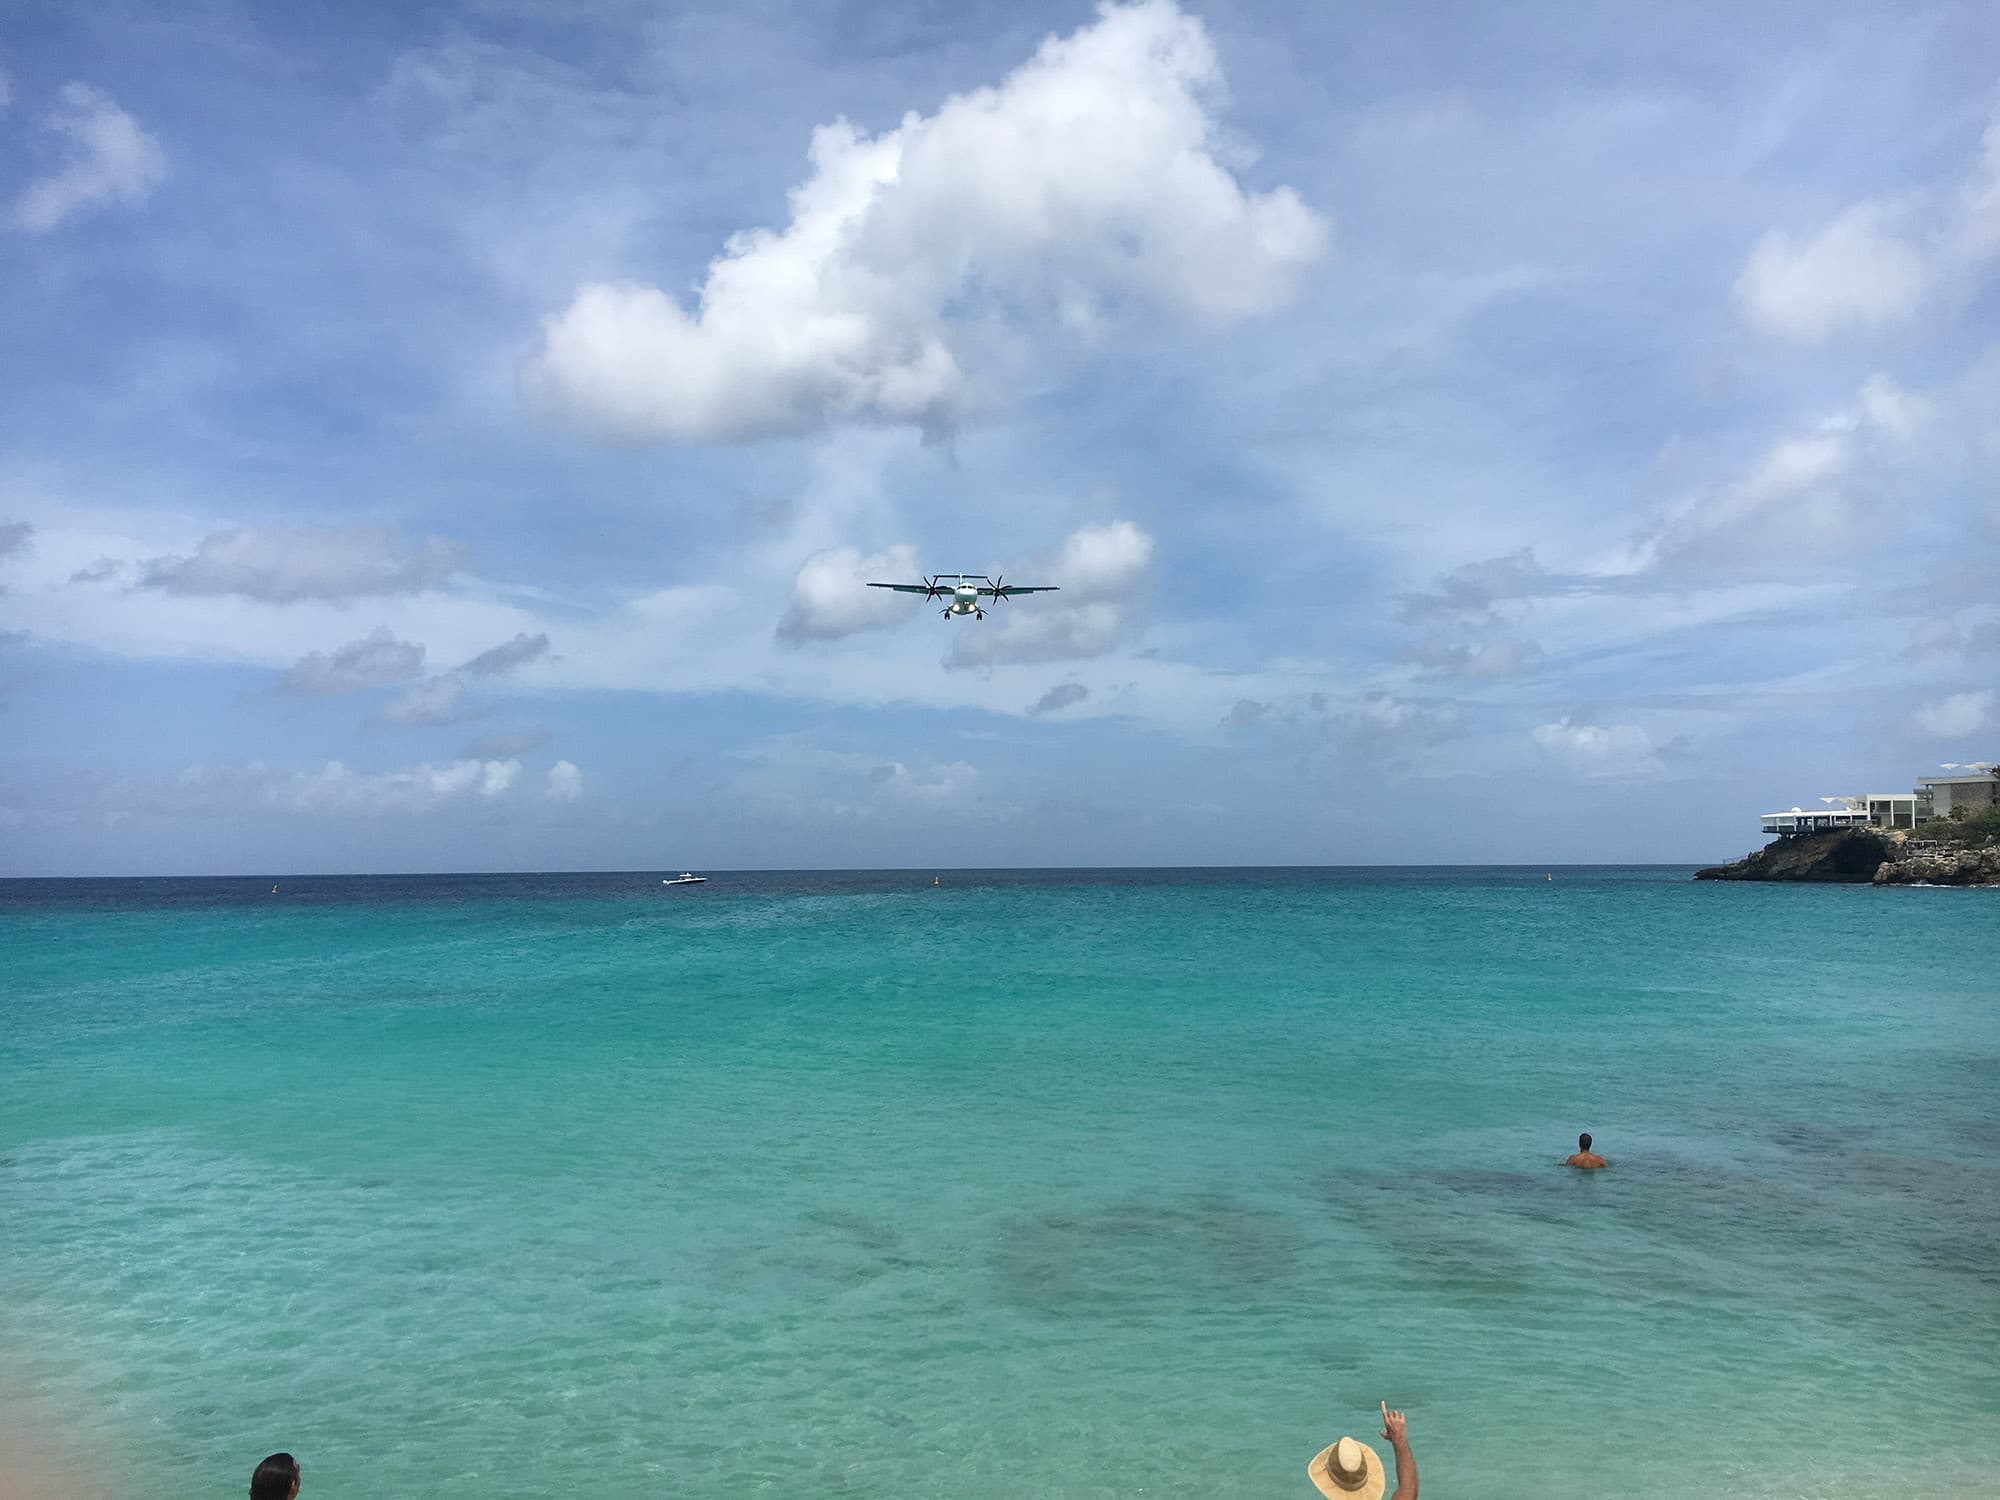 Maho Beach St Maarten - BEFORE EDITING! smartphone editing tips, smartphone editing tutorial, smartphone photography tips, smartphone photography tricks, smartphone photography tutorials _ Last year I made an amazing journey sailing from Colombia to Portugal on the Nomad Cruise. On the way, we made one stop on Saint Maarten Island in the Caribbean. The island itself is not the most interesting place but I did want to go to the beach where the planes fly over. I'm always trying to make photos of this kind of touristic hotspots a little bit different. So I positioned myself in such a way that all the tourists on the beach would be out of my frame. When I saw this guy with the hat I knew that would be my shot. Later when I checked the image on my phone I felt a little disappointed. The photo did not reflect my experience of being on that beach at all. It has a couple of flaws. Most embarrassing one being my finger in front of the lens. But that is not the only thing. The colors and contrasts are flat and there are more distracting elements. But I could see the potential. So I started to edit the image in Snapseed to make it come alive.